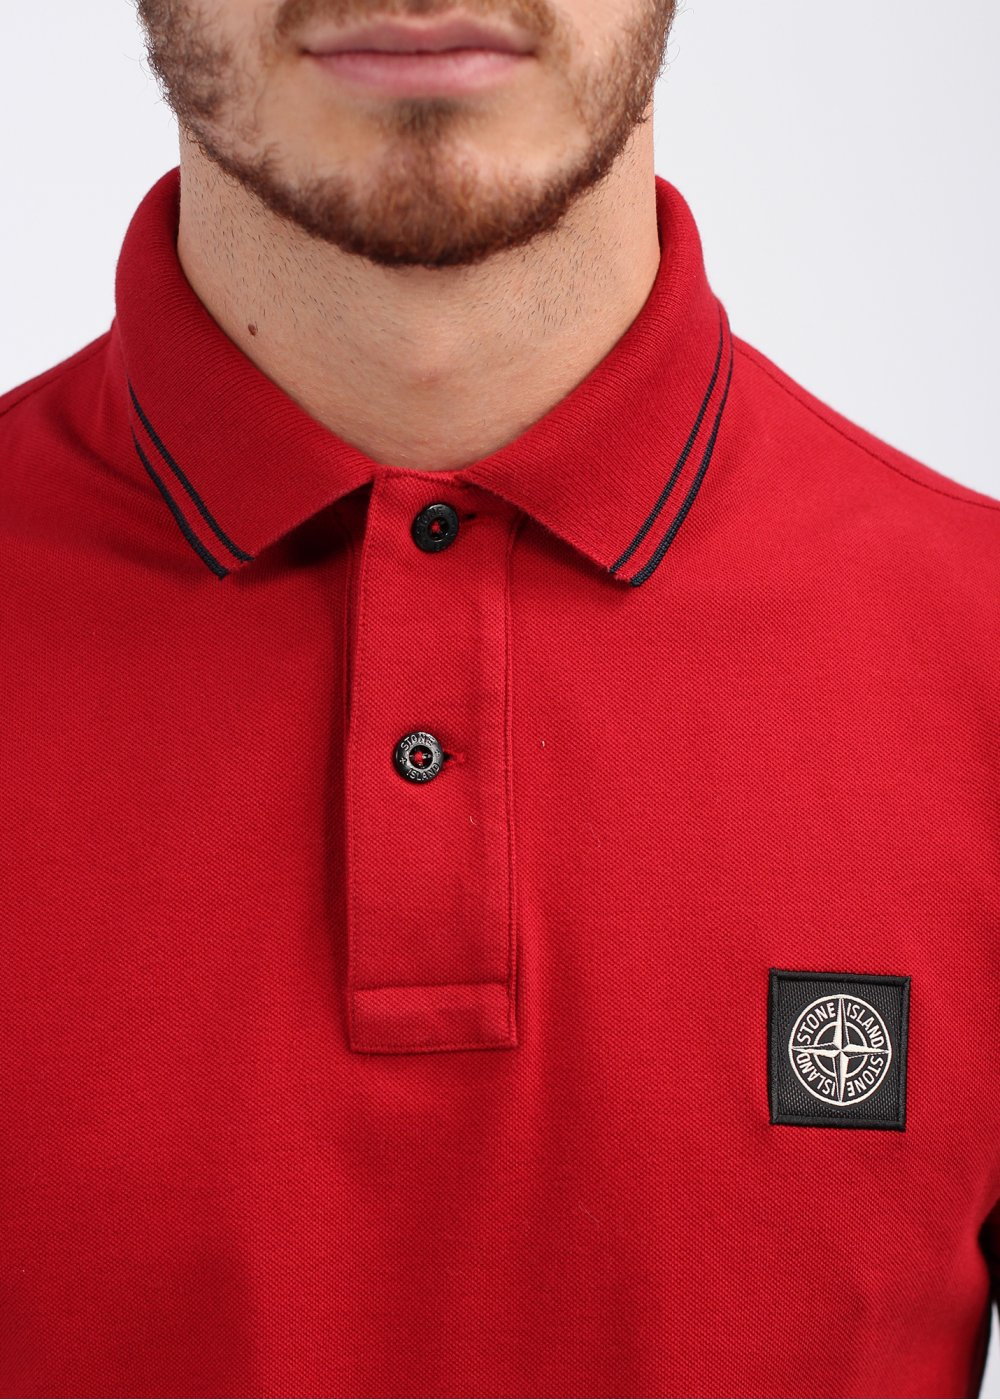 Aarticle Number Stone Island